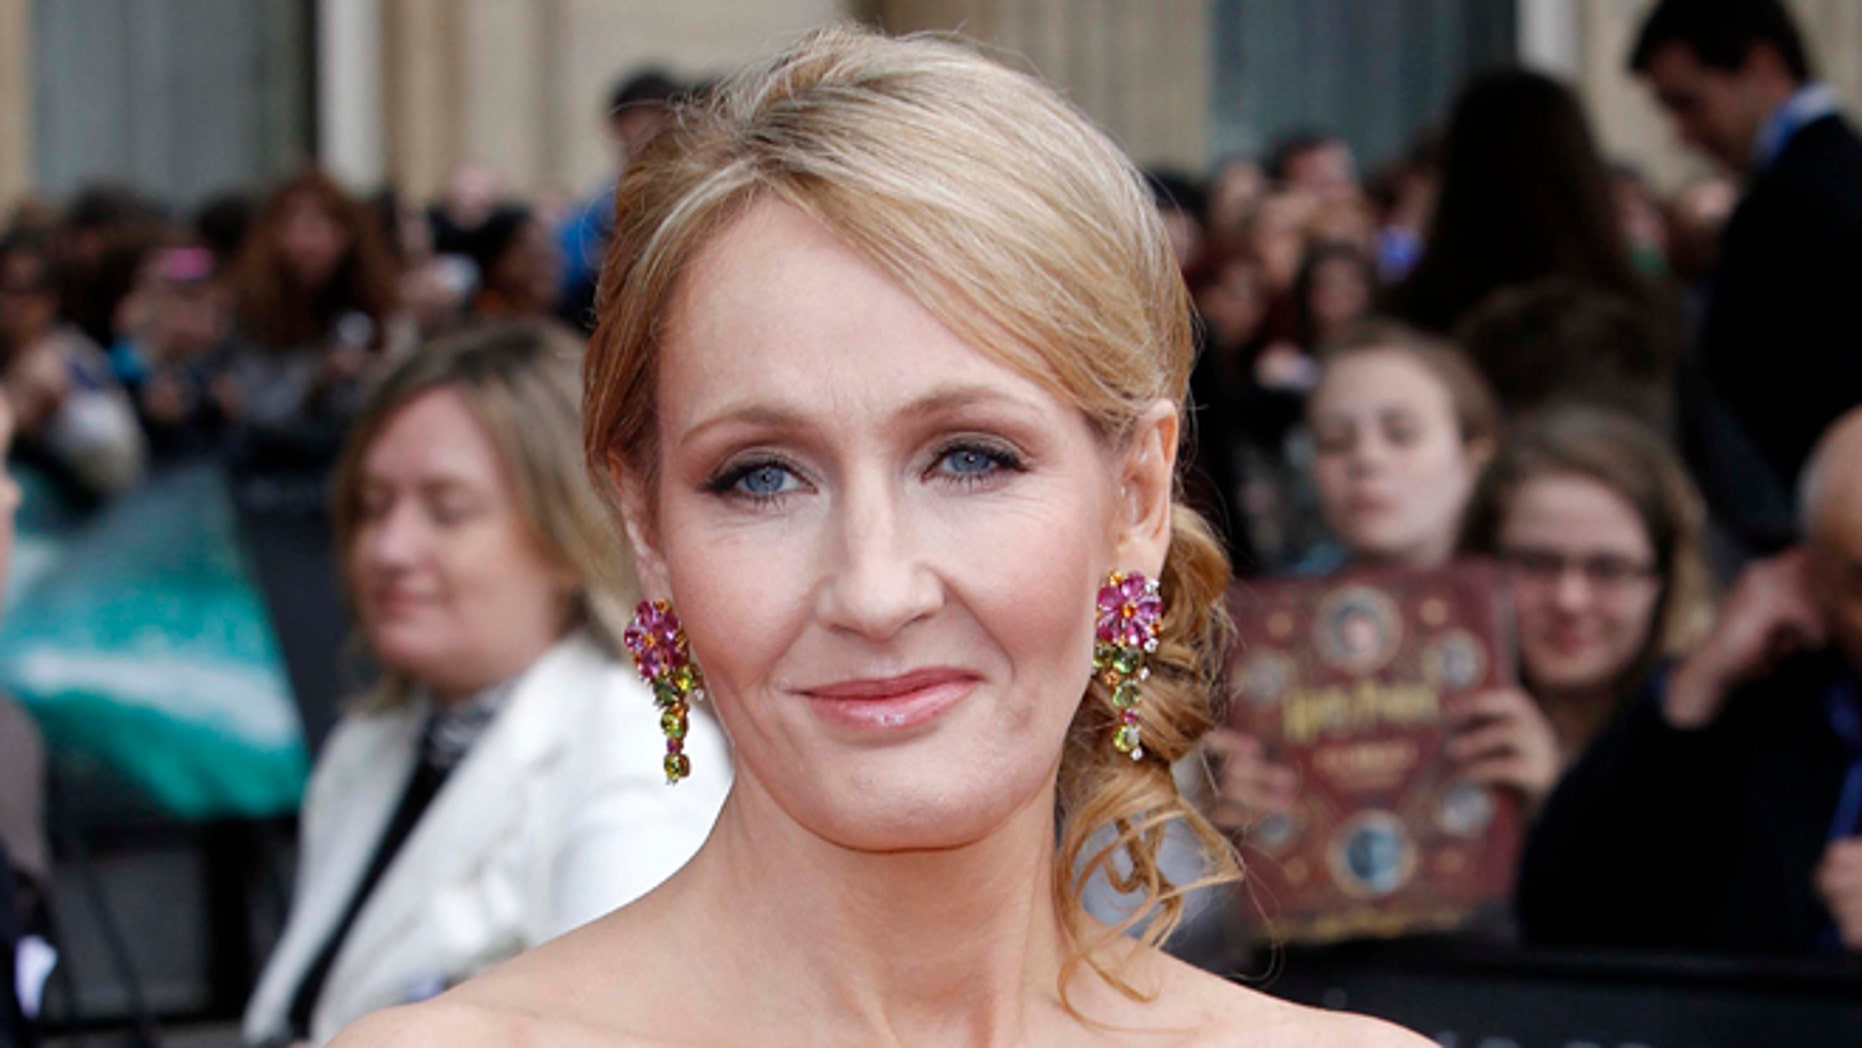 """July 7, 2011. British author JK Rowling arrives in Trafalgar Square, in central London, for the World Premiere of  """"Harry Potter and The Deathly Hallows: Part 2."""""""